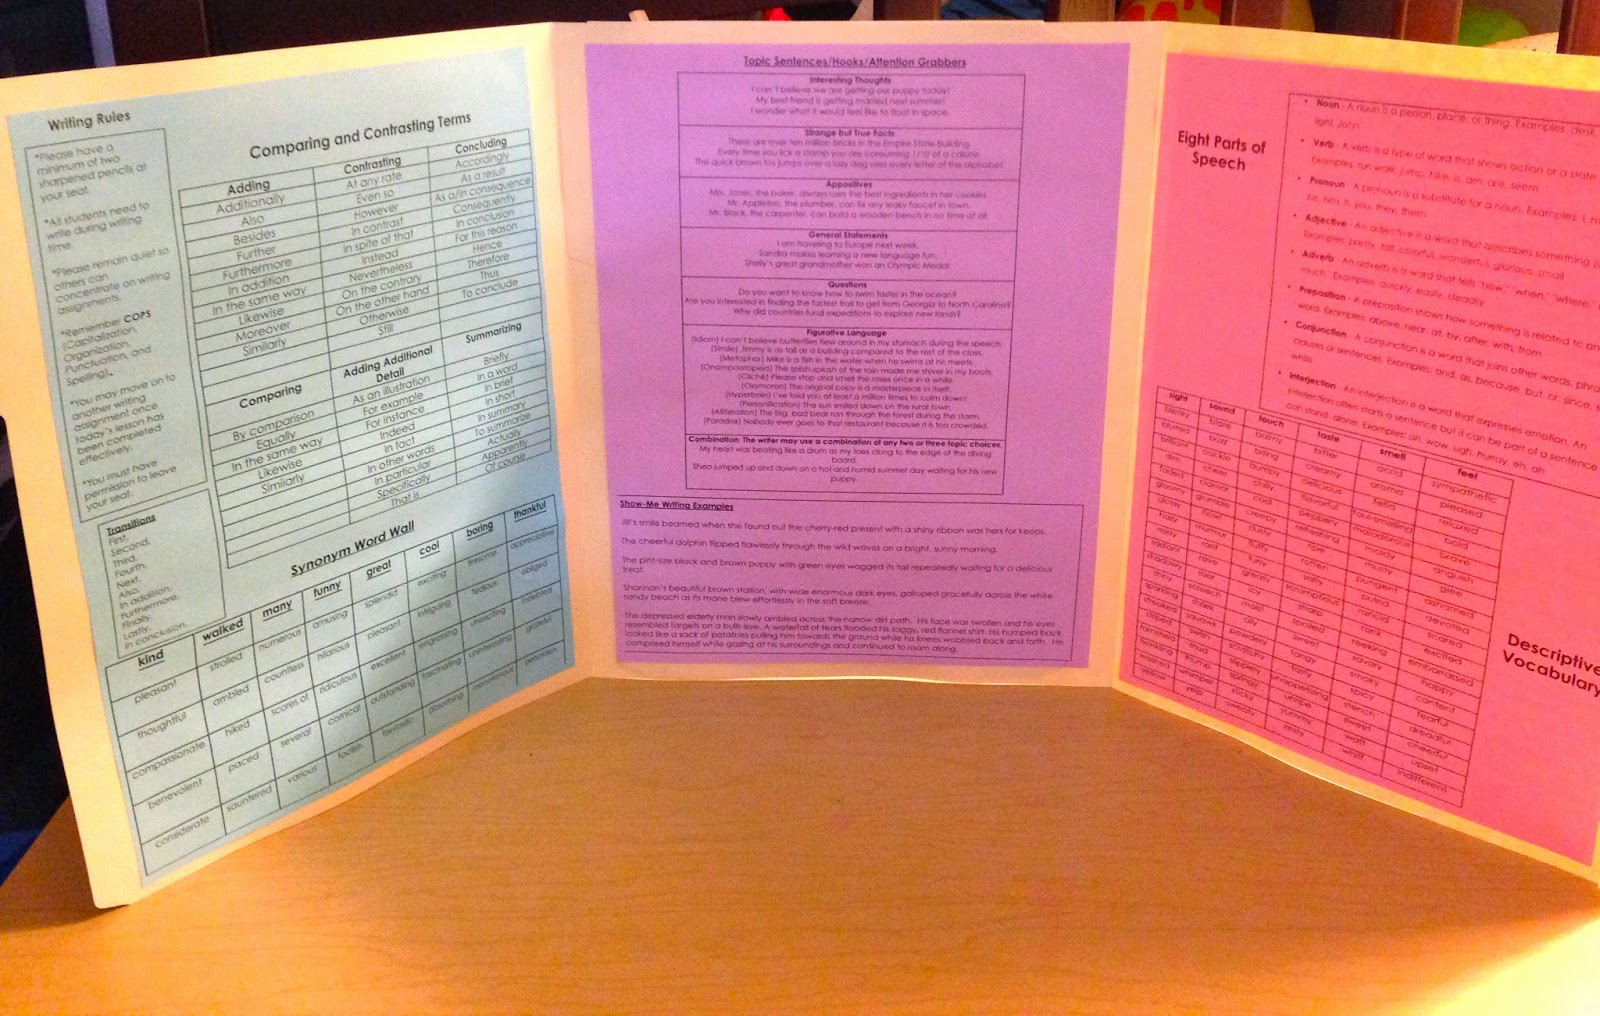 This Mini Office Is My Latest Creation For Assisting Students With Writing.  (You Can Use Mini Offices For Any Subject Matter). I Created This Folder So  My ...